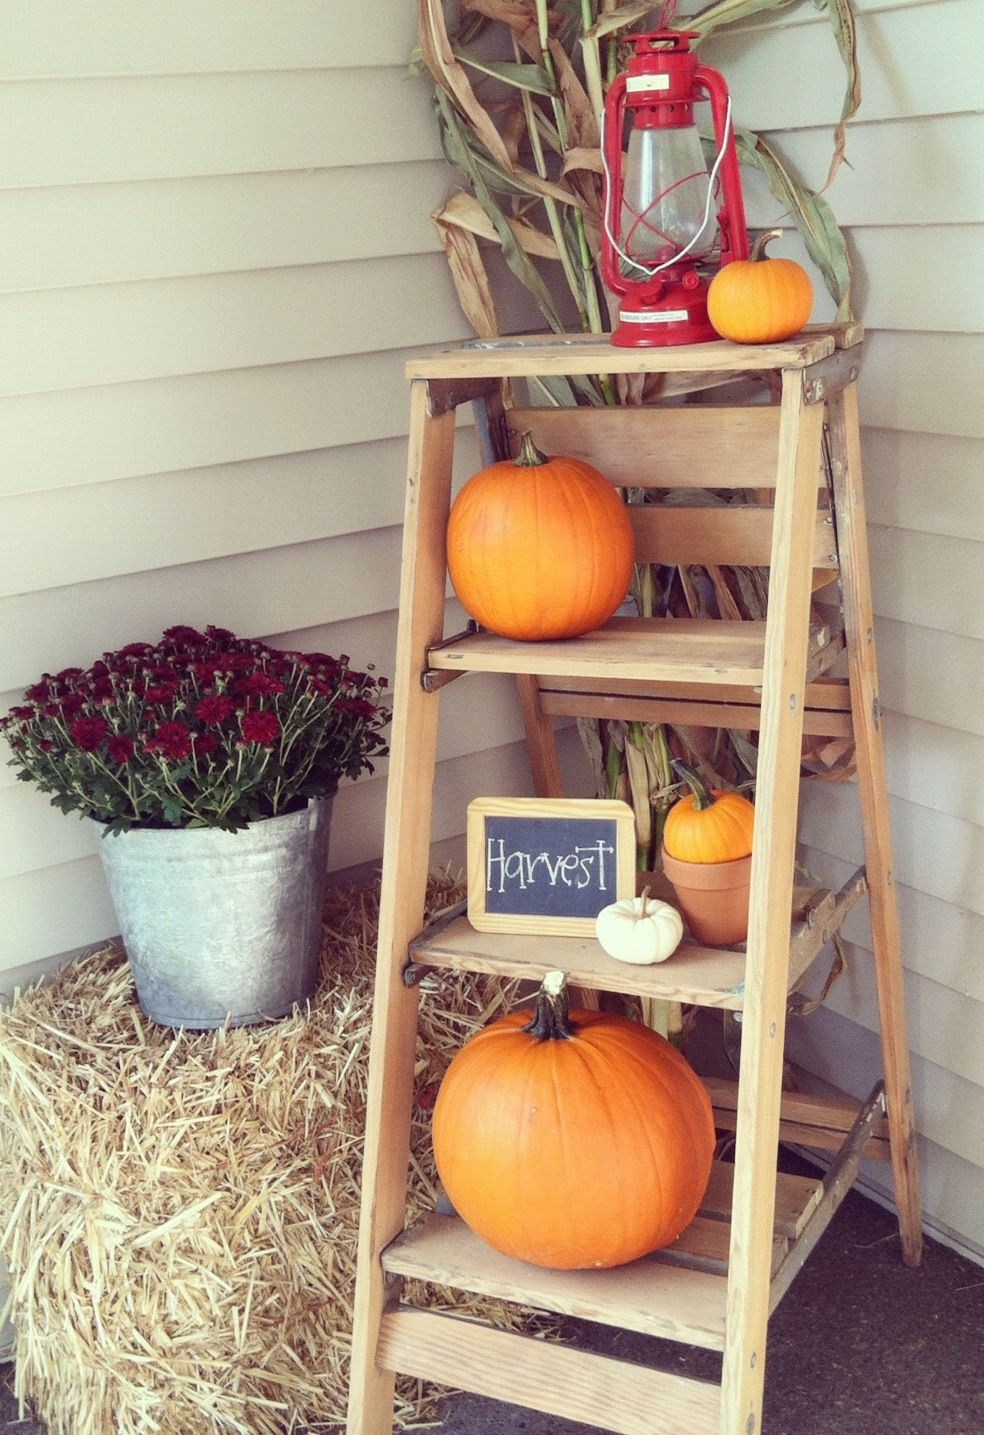 Old ladder with pumpkins for fall porch celebrate Pinterest - Halloween Decoration Ideas Pinterest